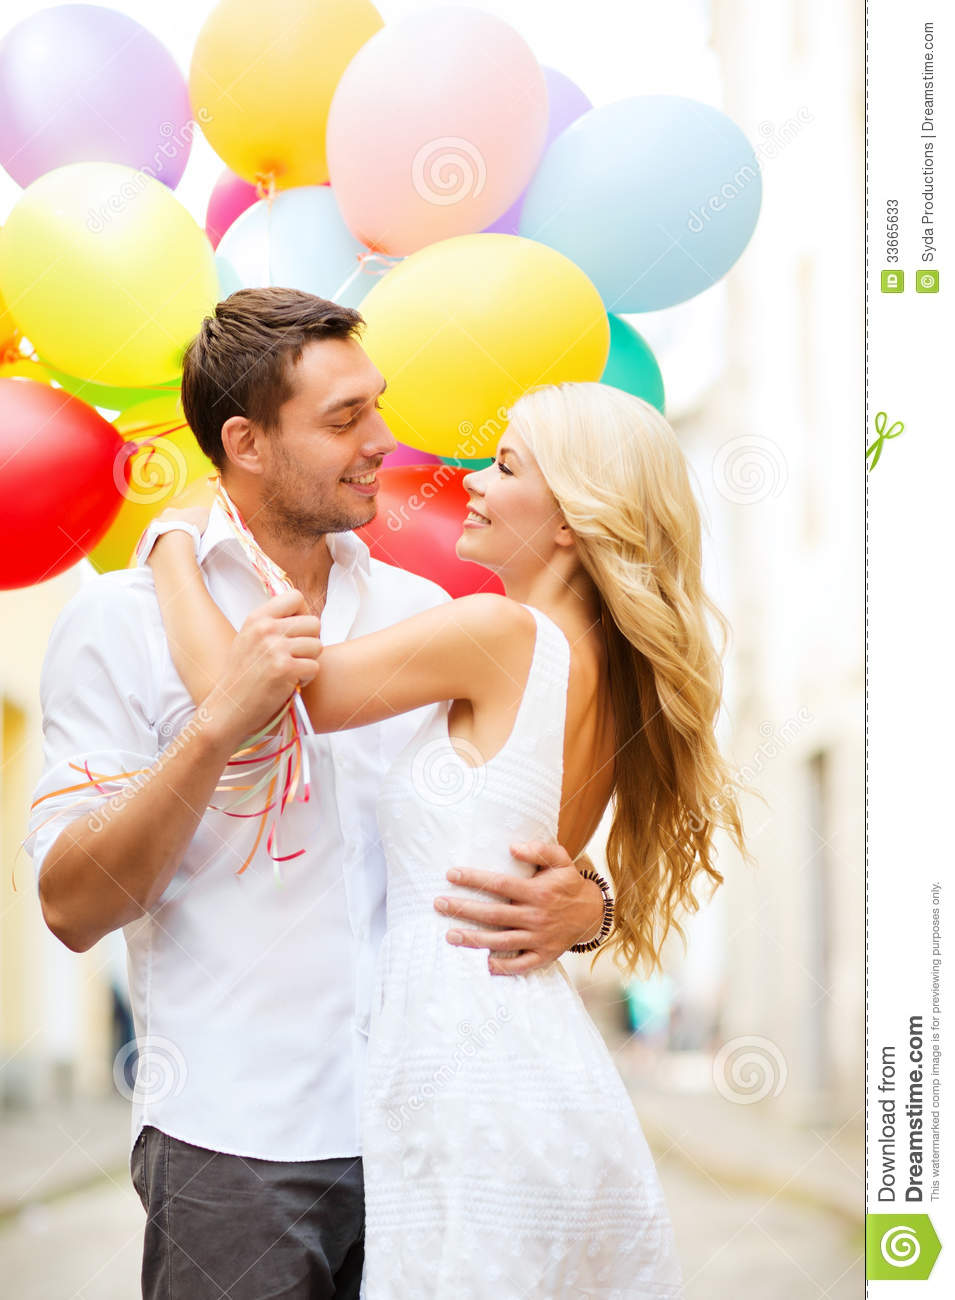 summers online hookup & dating The study is called to hook up or date: that dating vs hooking up study has online dating changed the way we love each other.